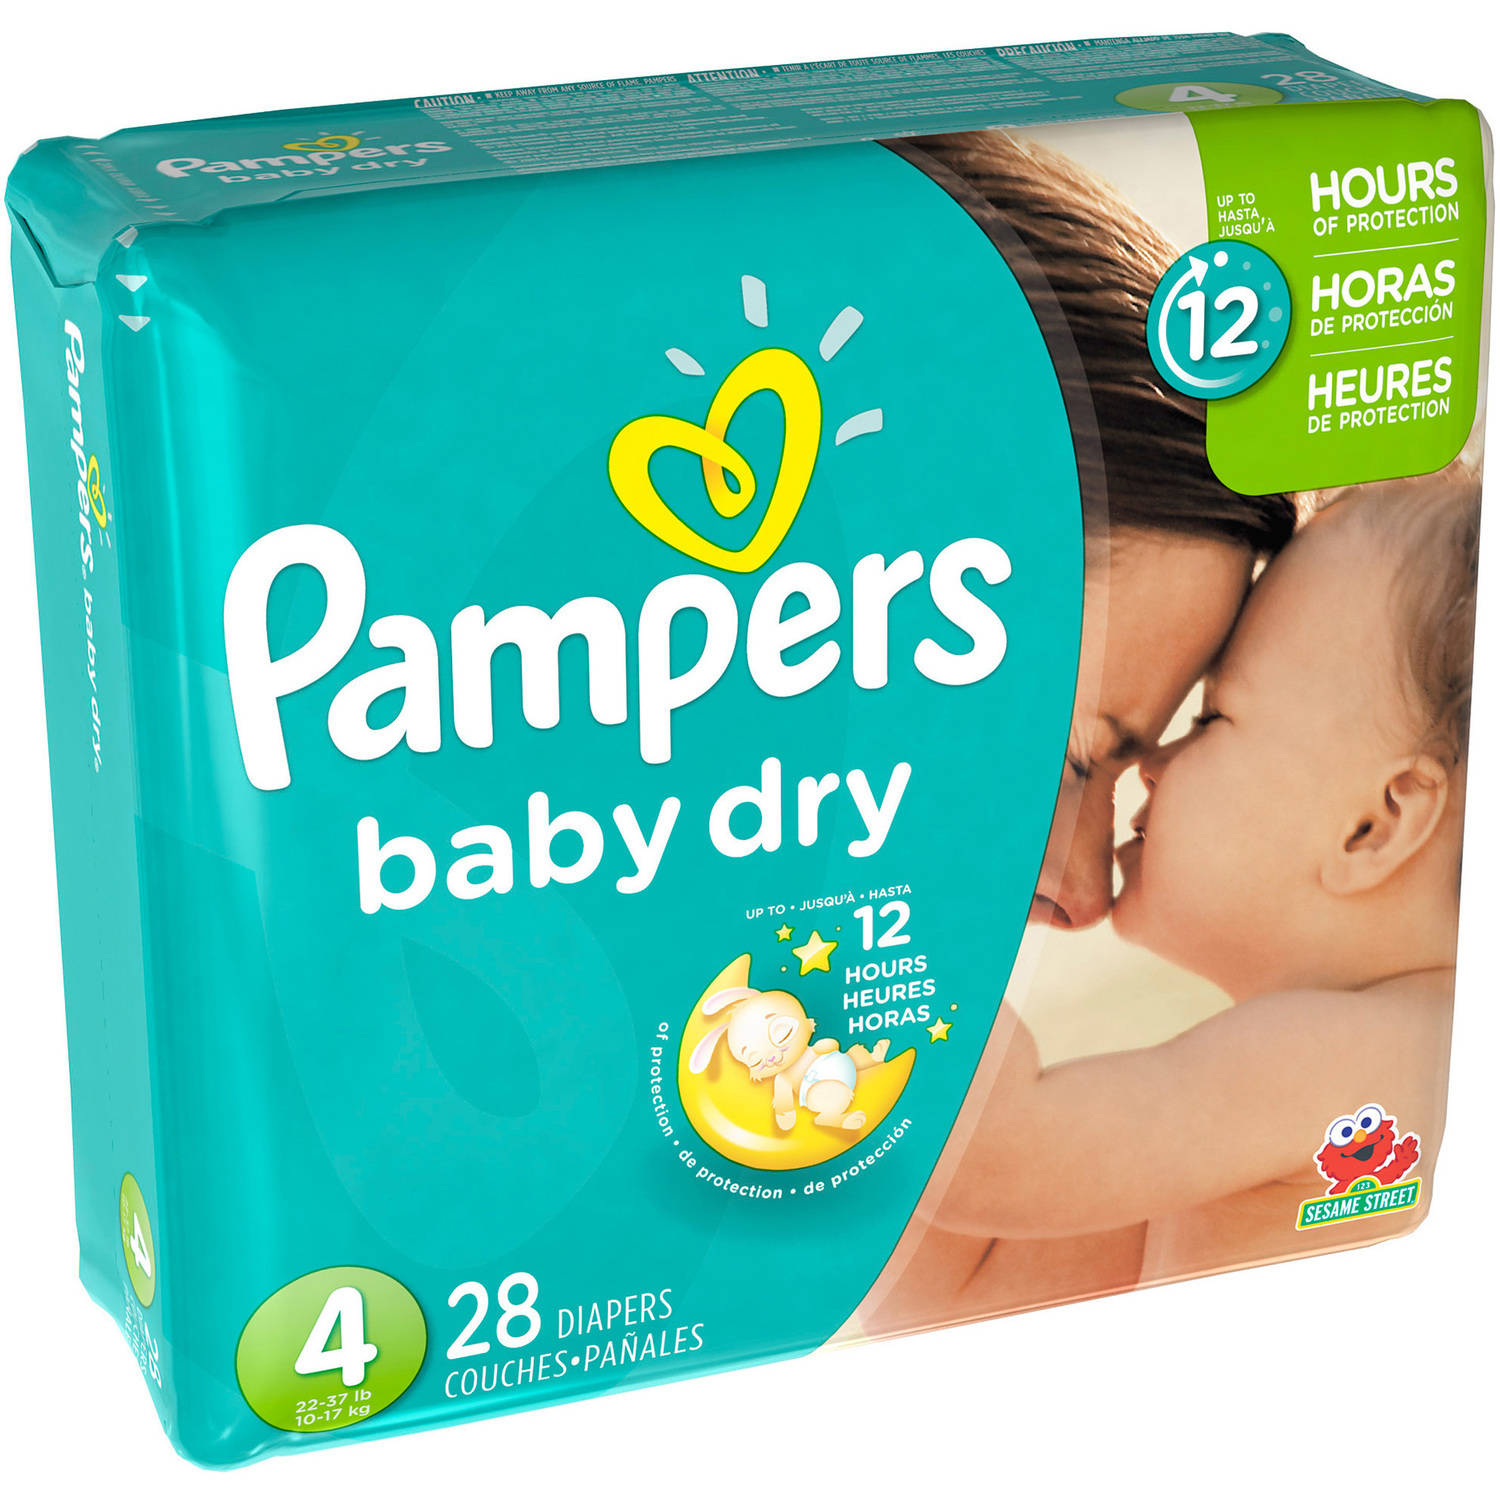 Pampers Baby Dry Diapers, Size 4, 28 Diapers